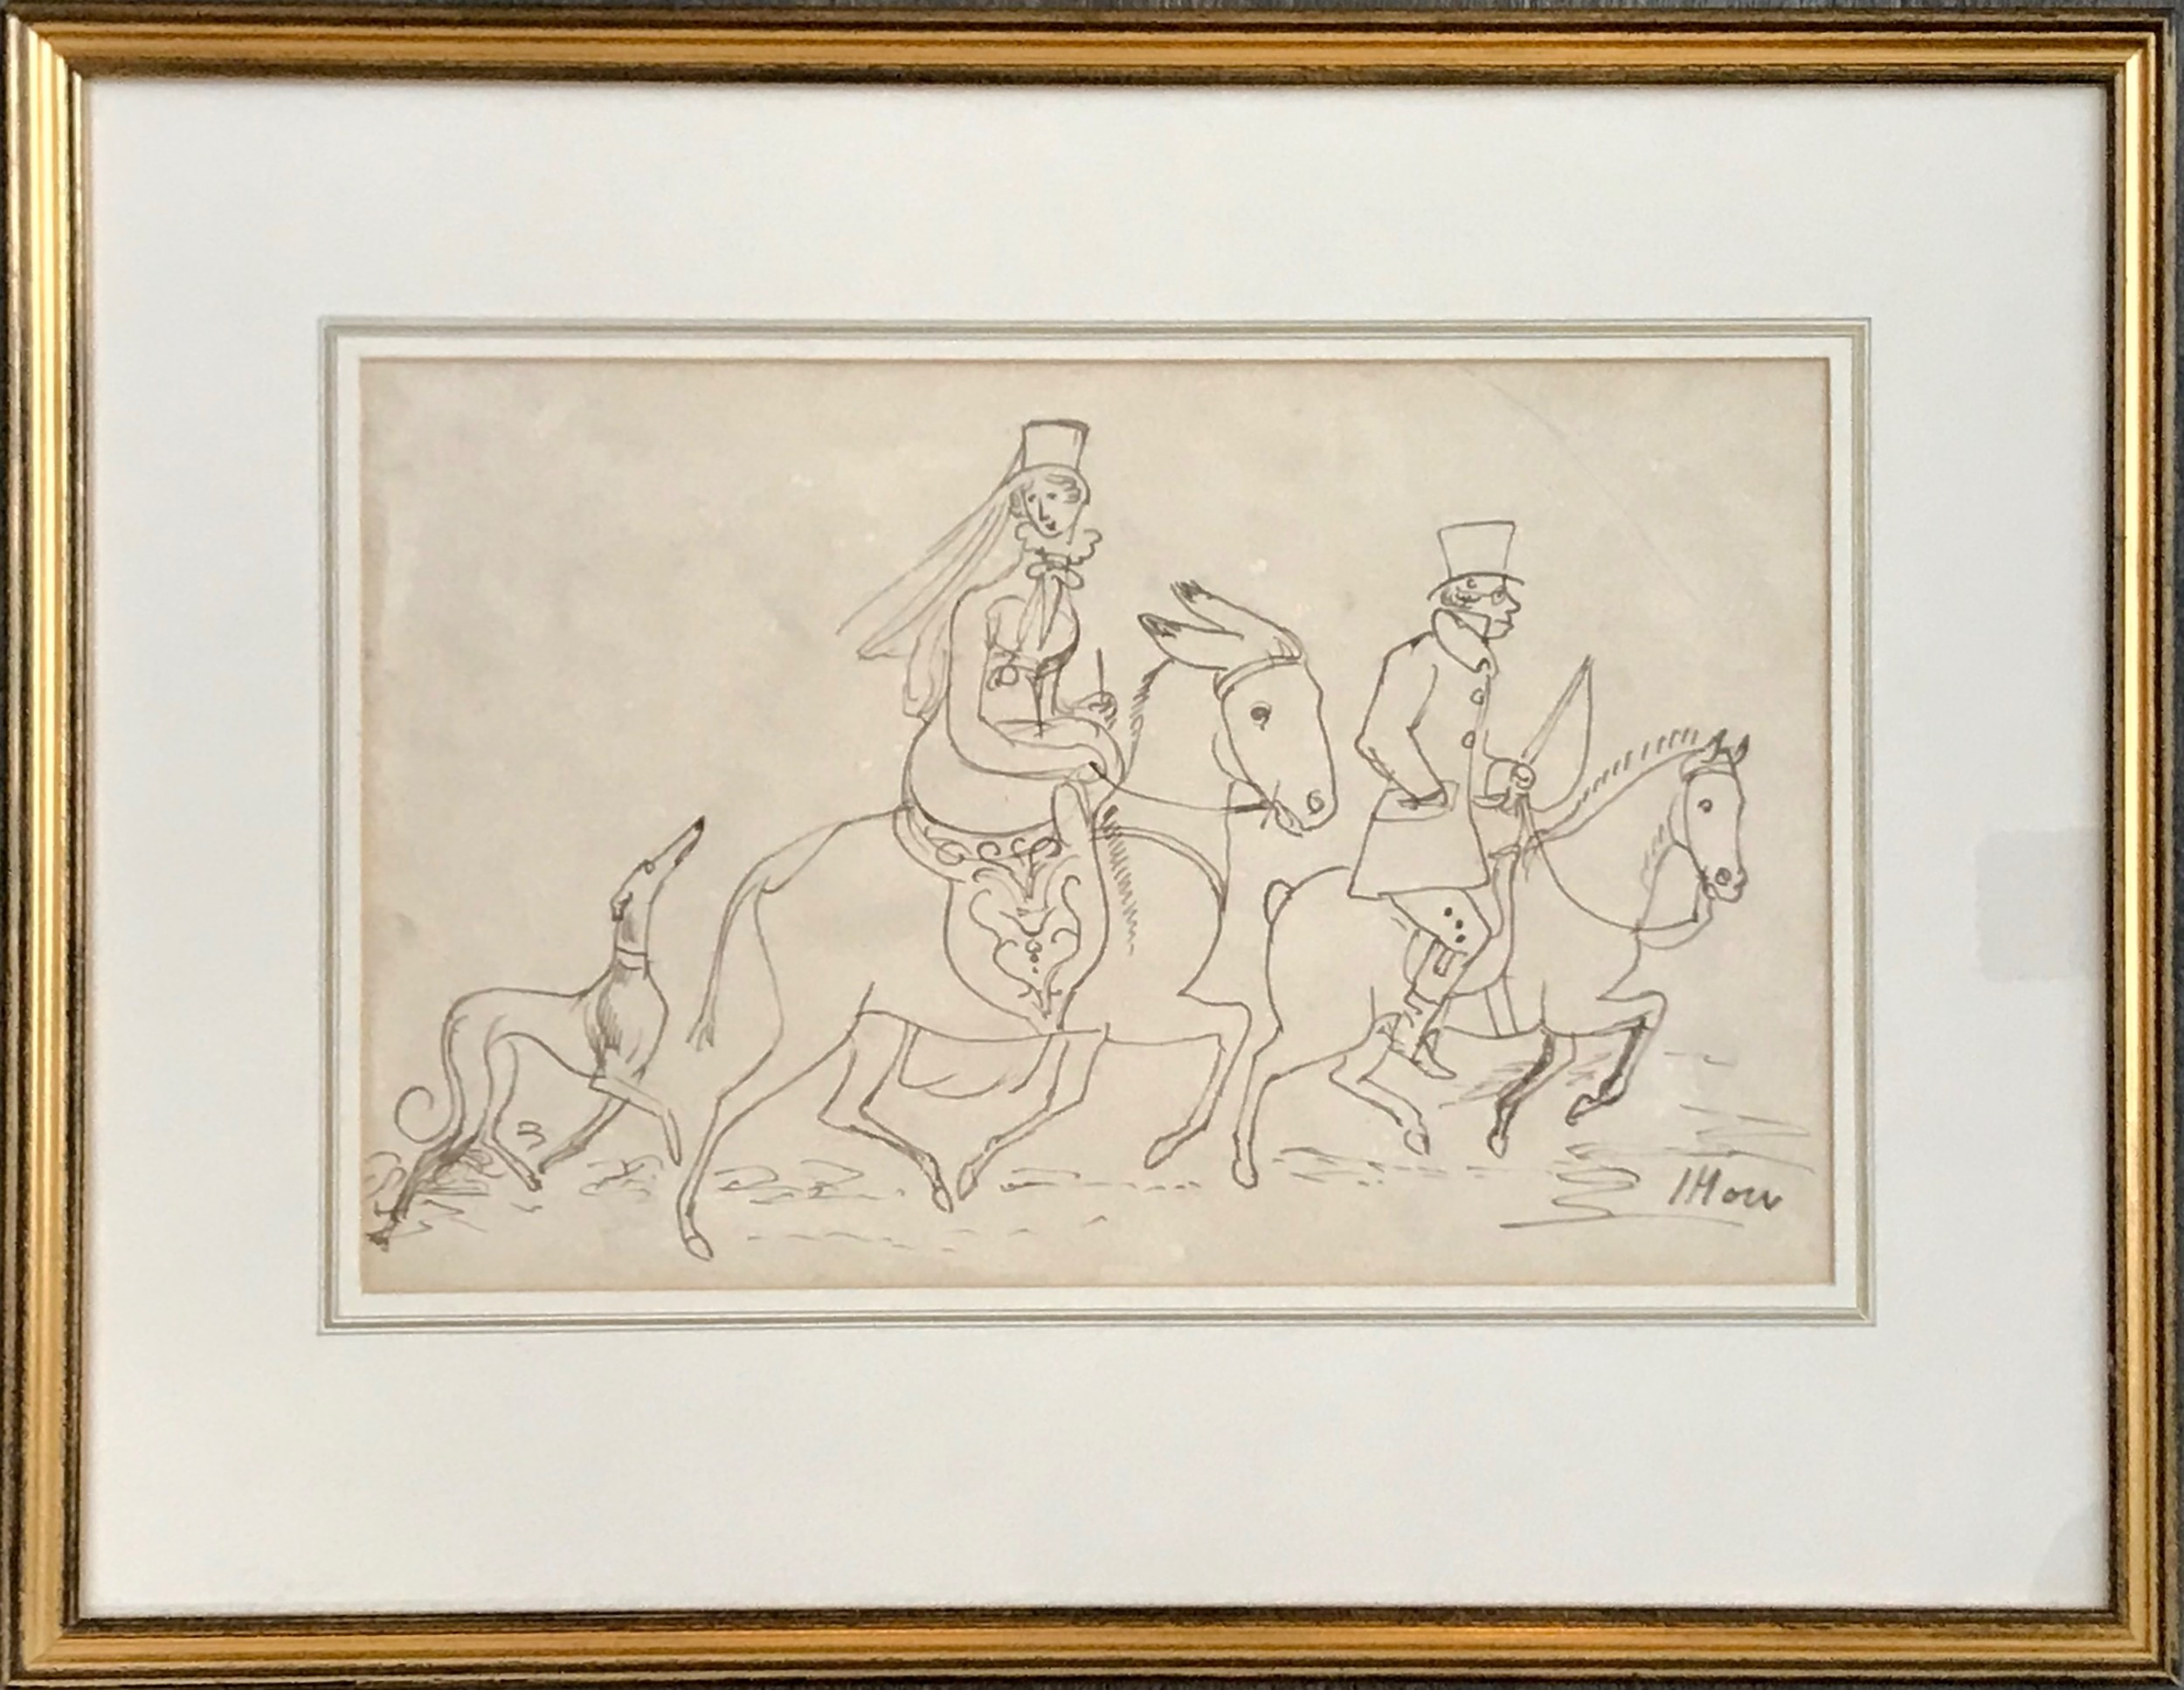 a large humorous regency drawing by famed animal artist james howe 1780 1836 depicting a noble lady riding a donkey early 19th century scottish art